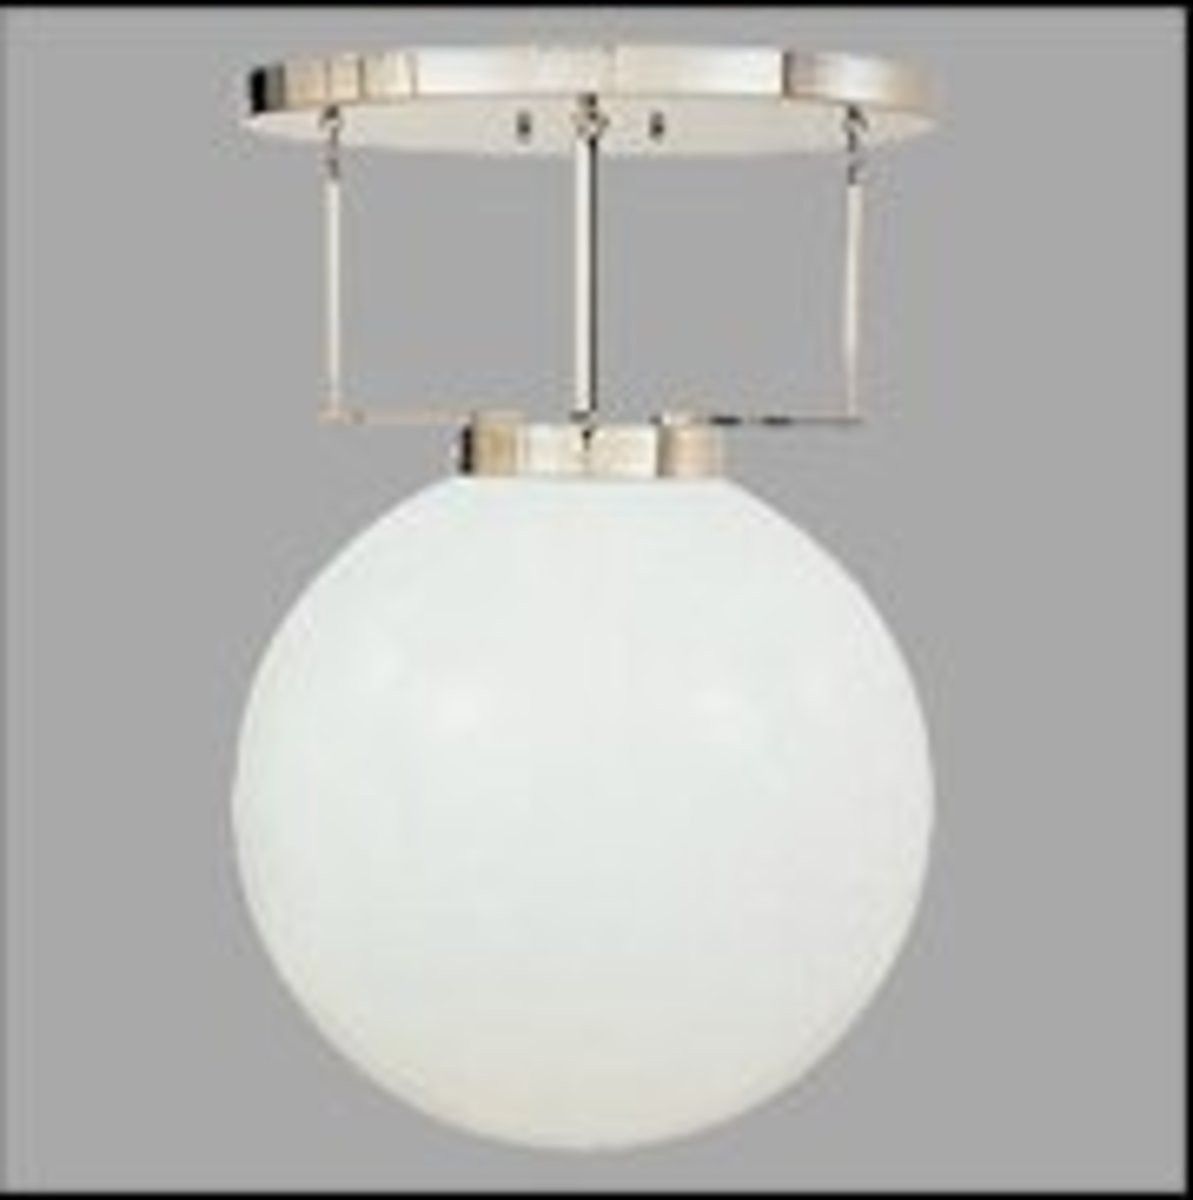 DMB 26' Ceiling Lamp designed by Marianne Brandt, 1926